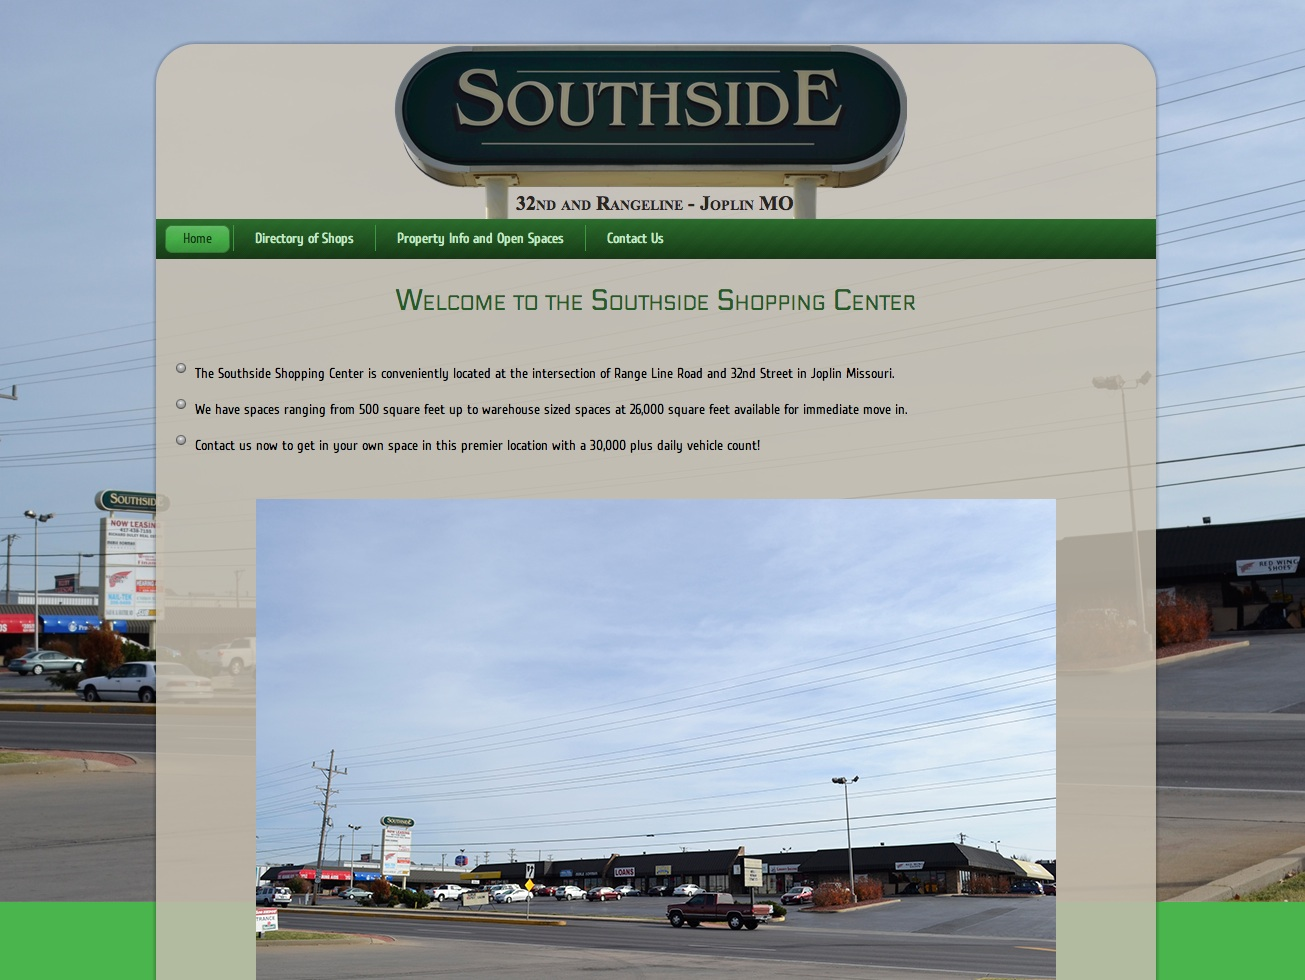 Southside Shopping Center